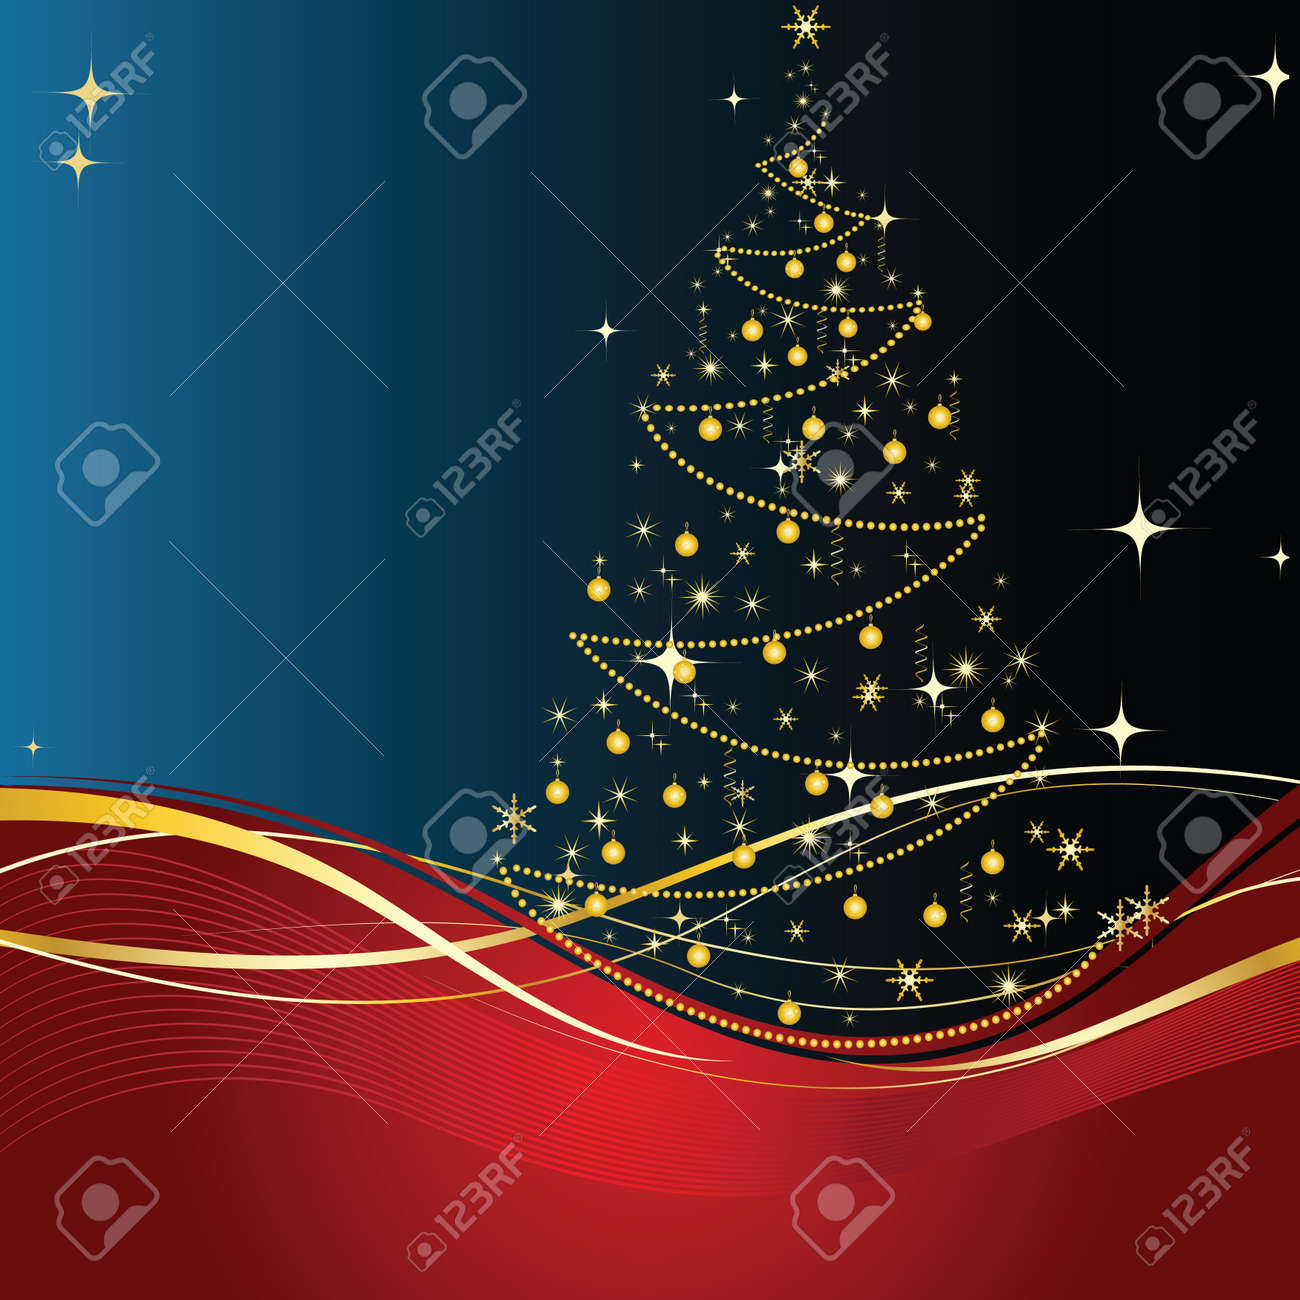 Merry Christmas and happy new year background and decoration Stock Vector - 14833398